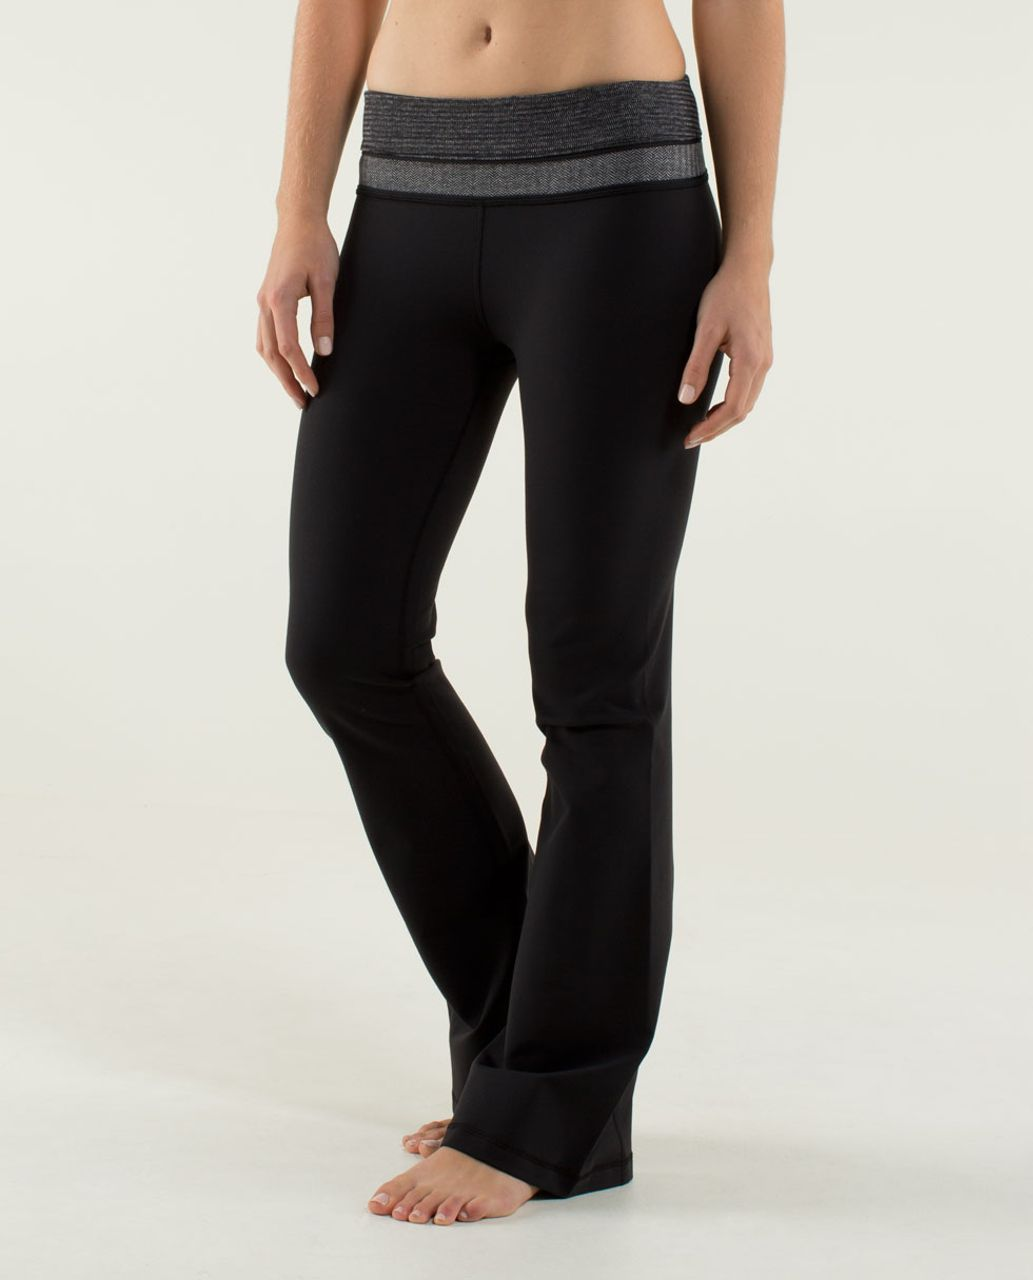 Lululemon Groove Pant *Brushed (Regular) - Black / Black / Deep Coal / Heathered Slate / Black